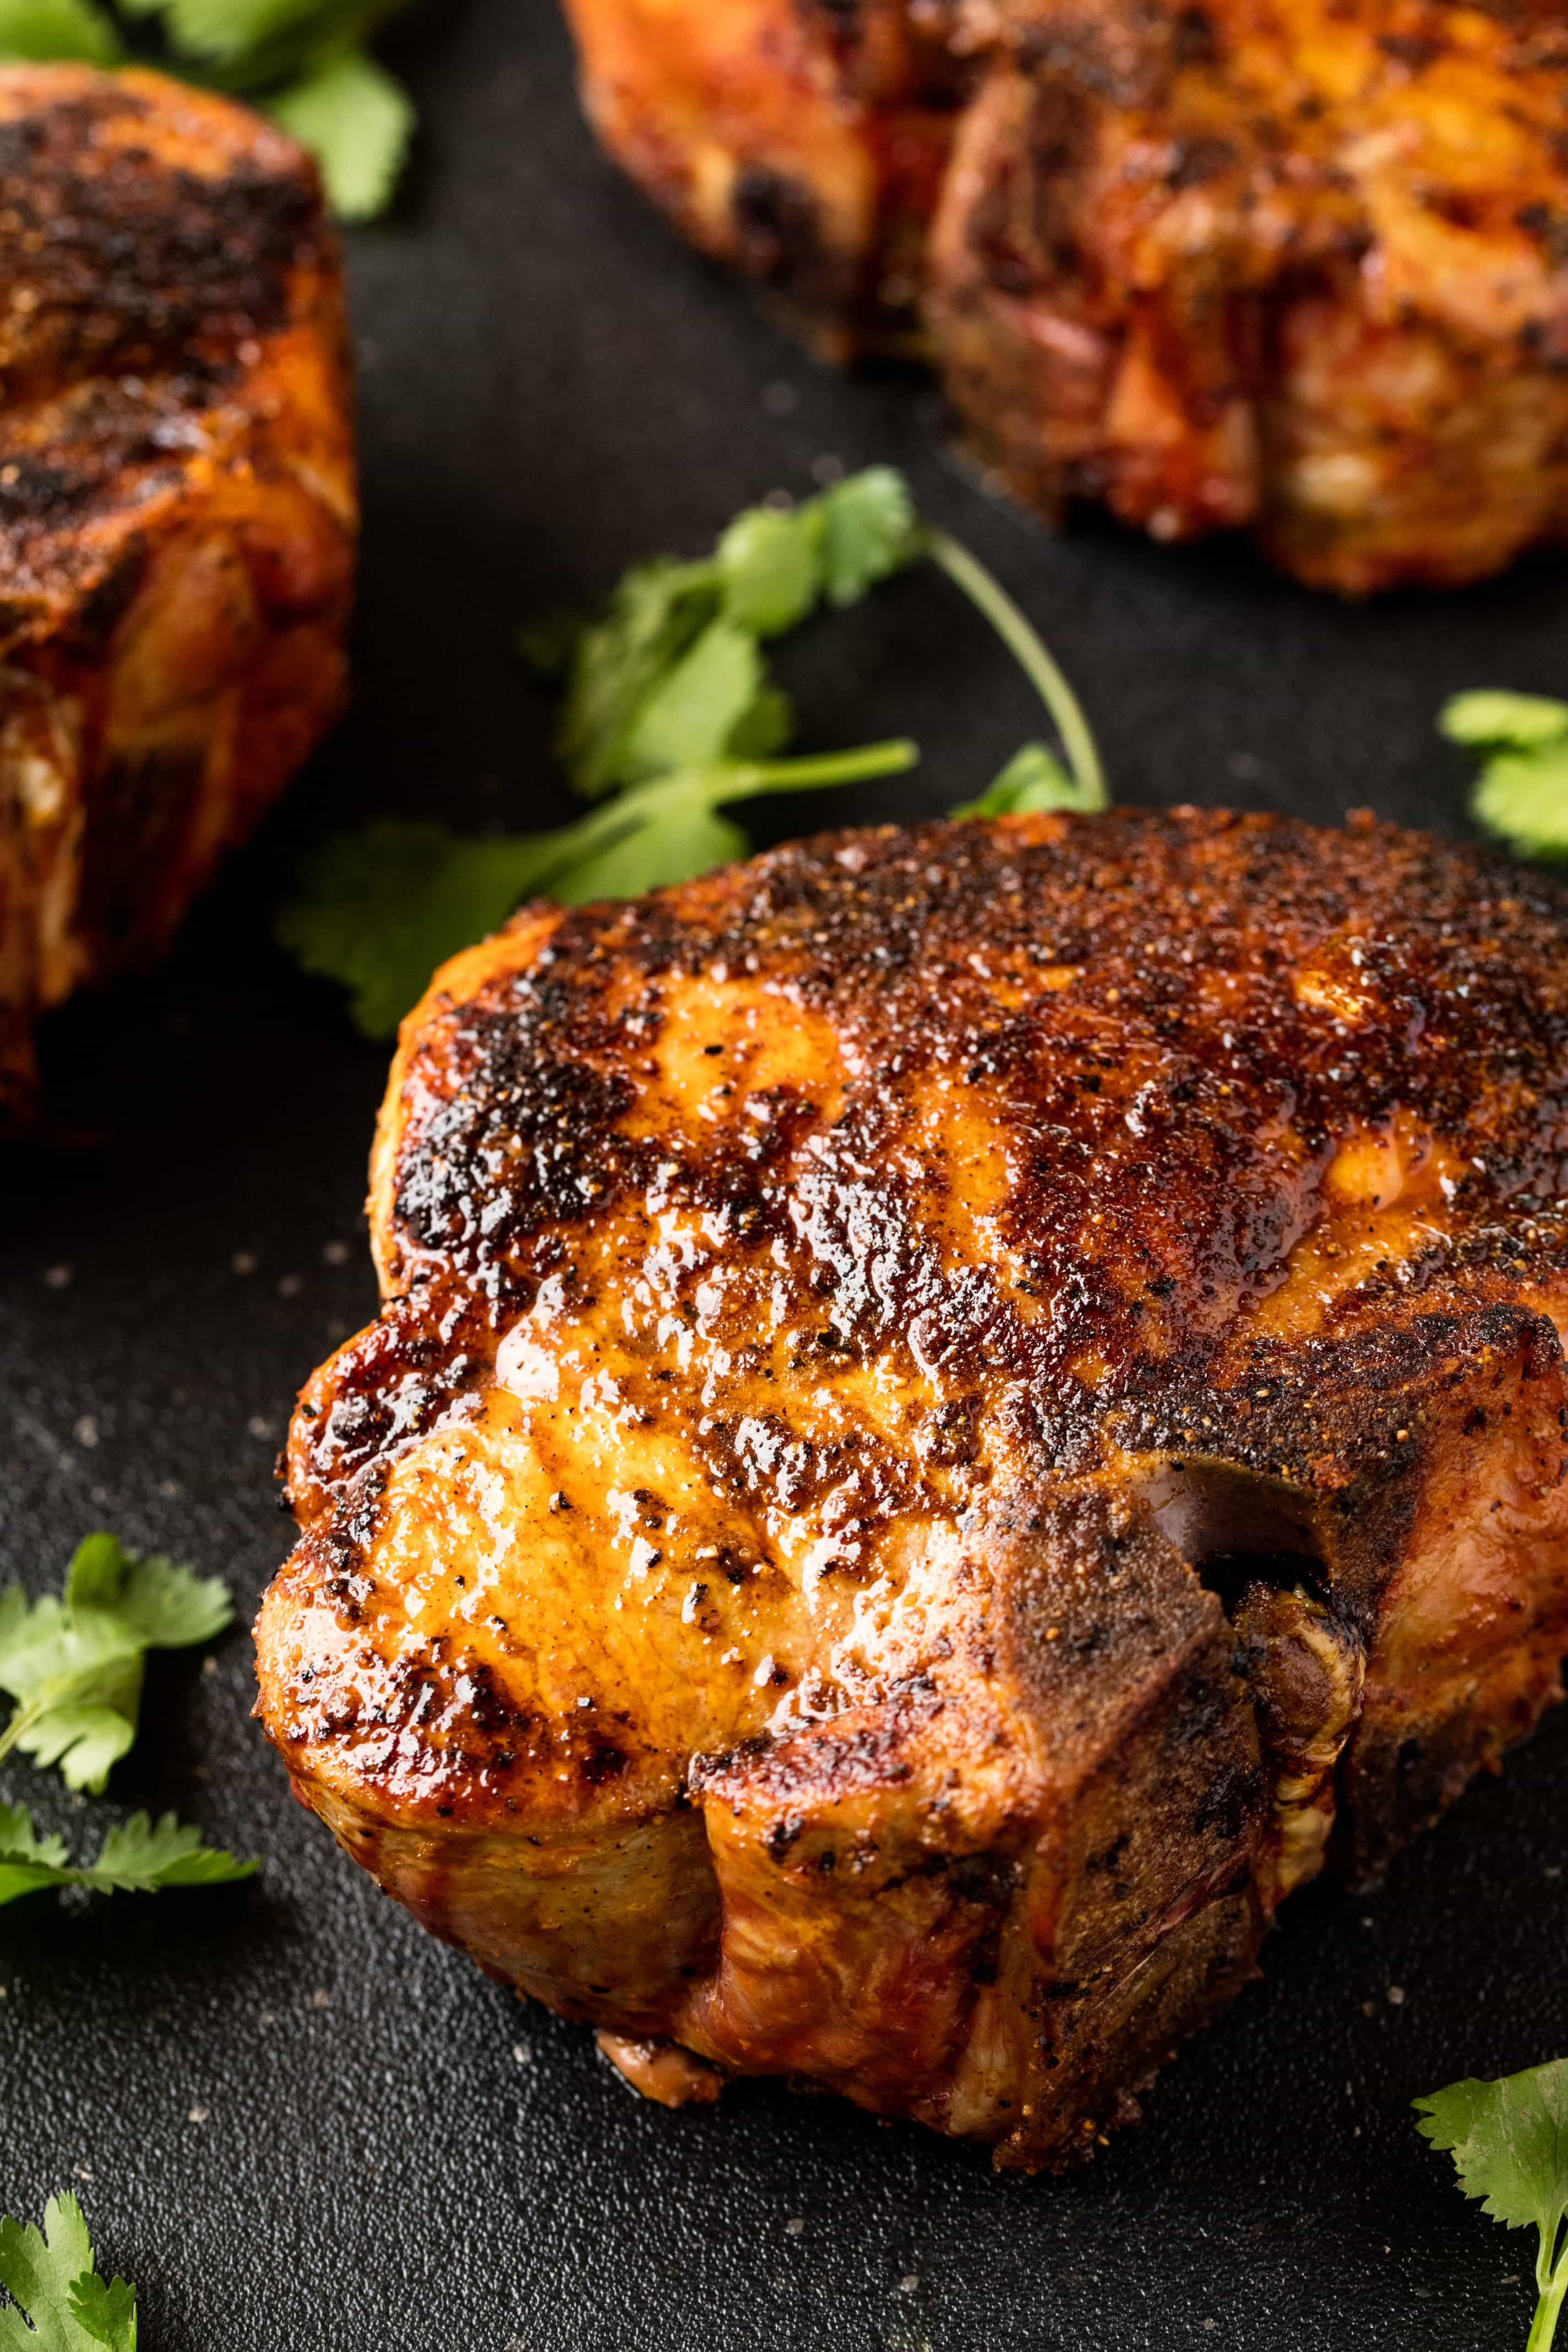 How long to cook pork chops on indoor grill